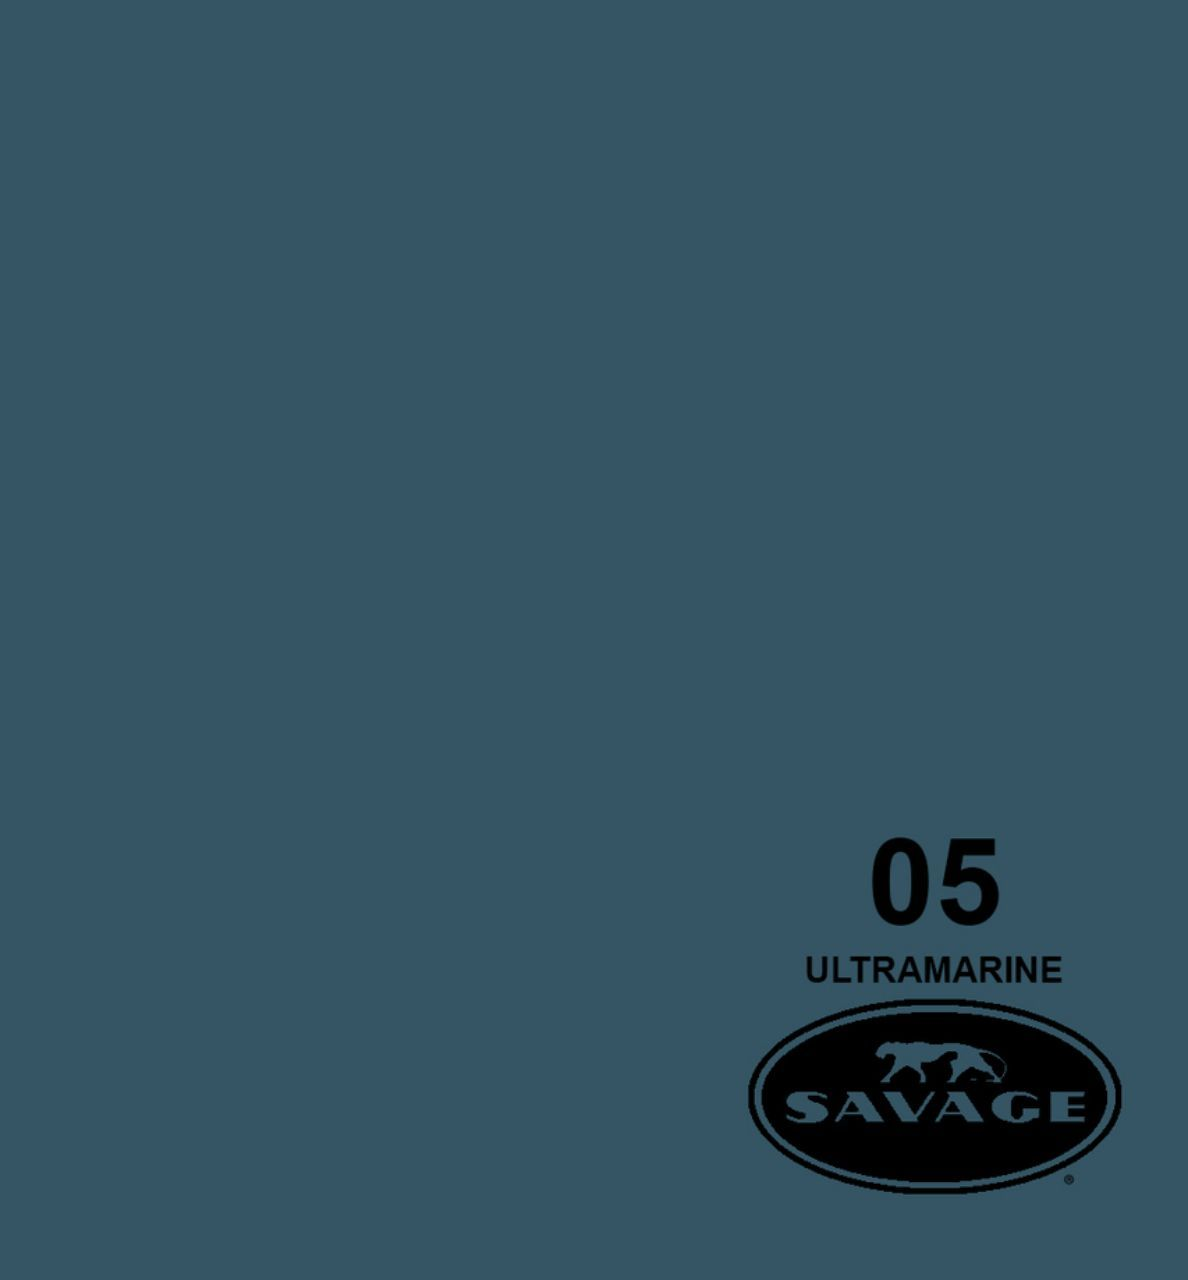 فون کاغذی Savage #05 ultramarine 11*3